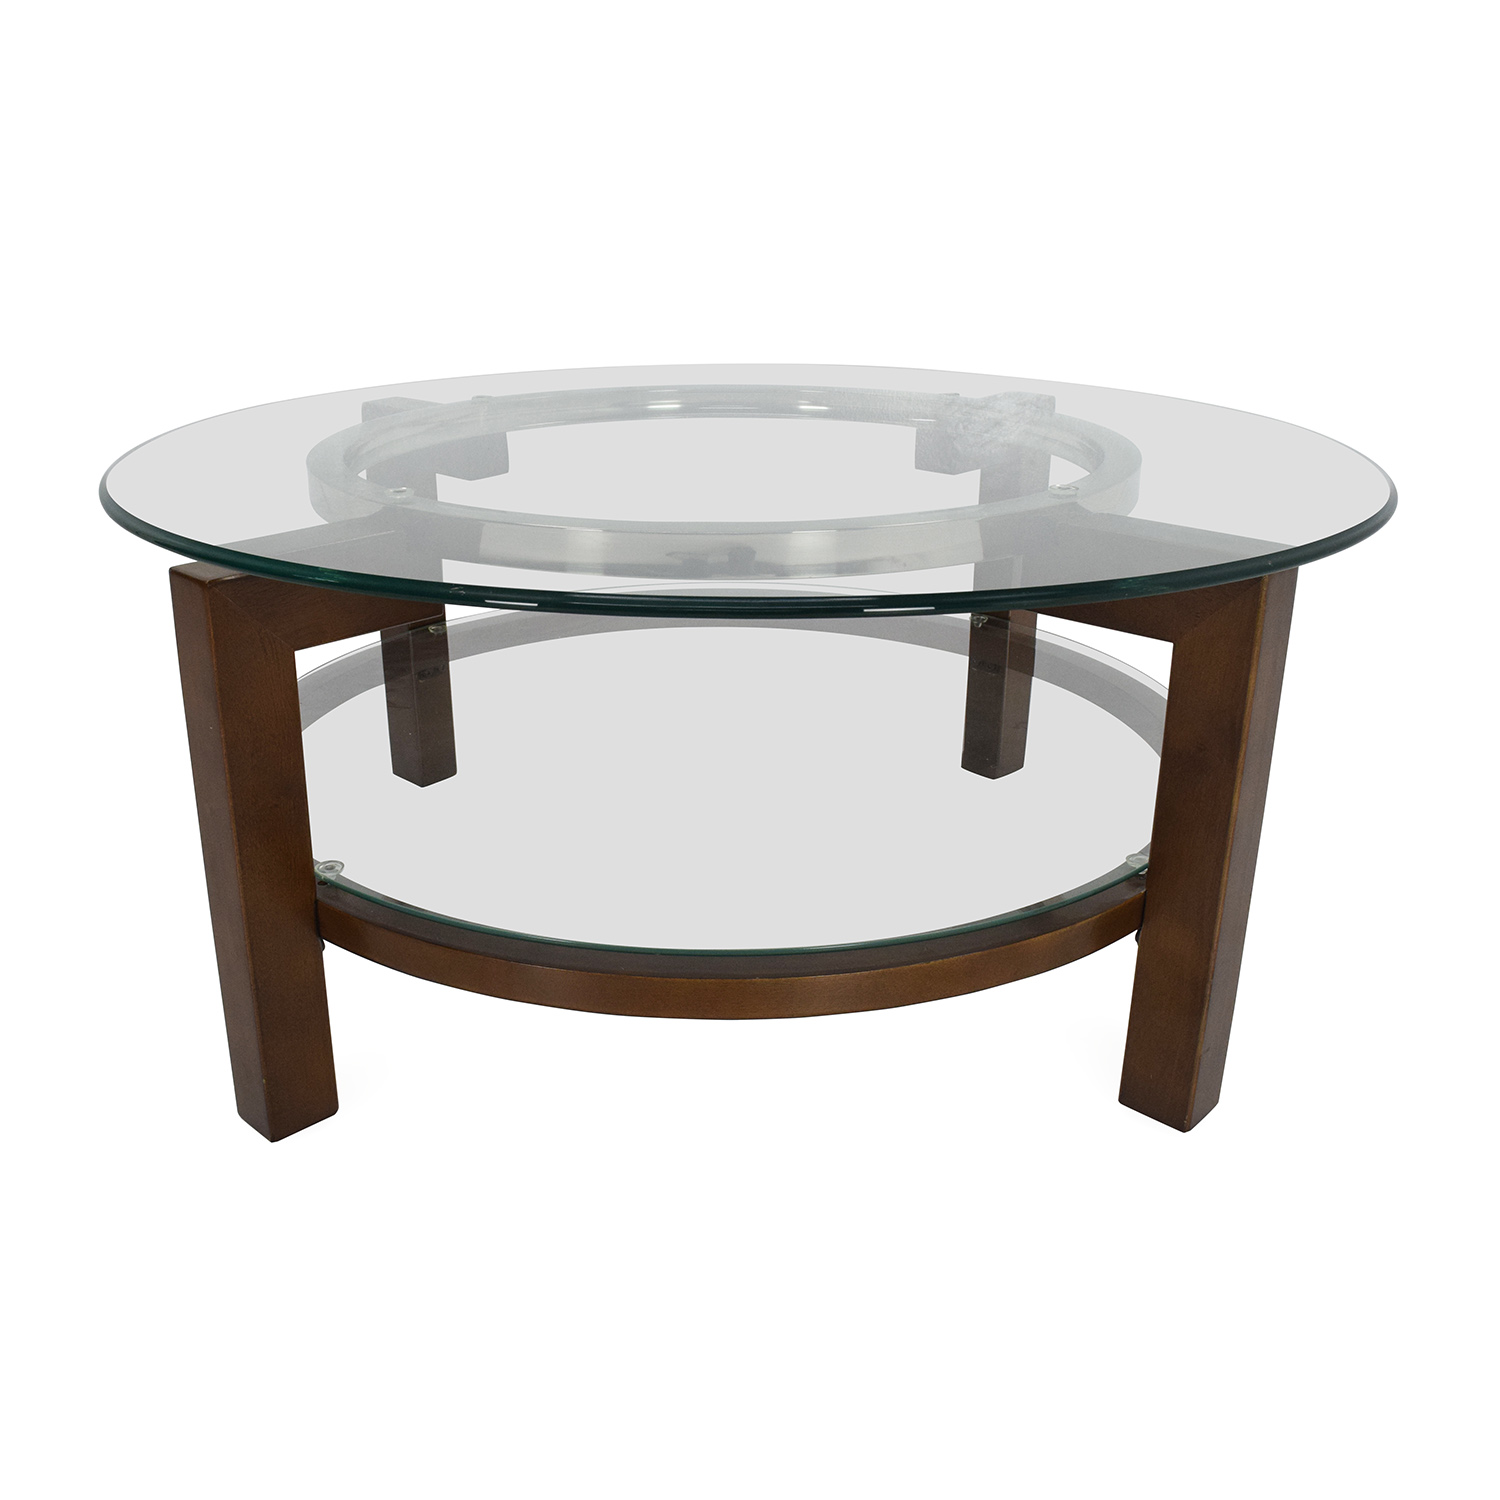 88 Off Macy S Macy S Glass Top Coffee Table Tables